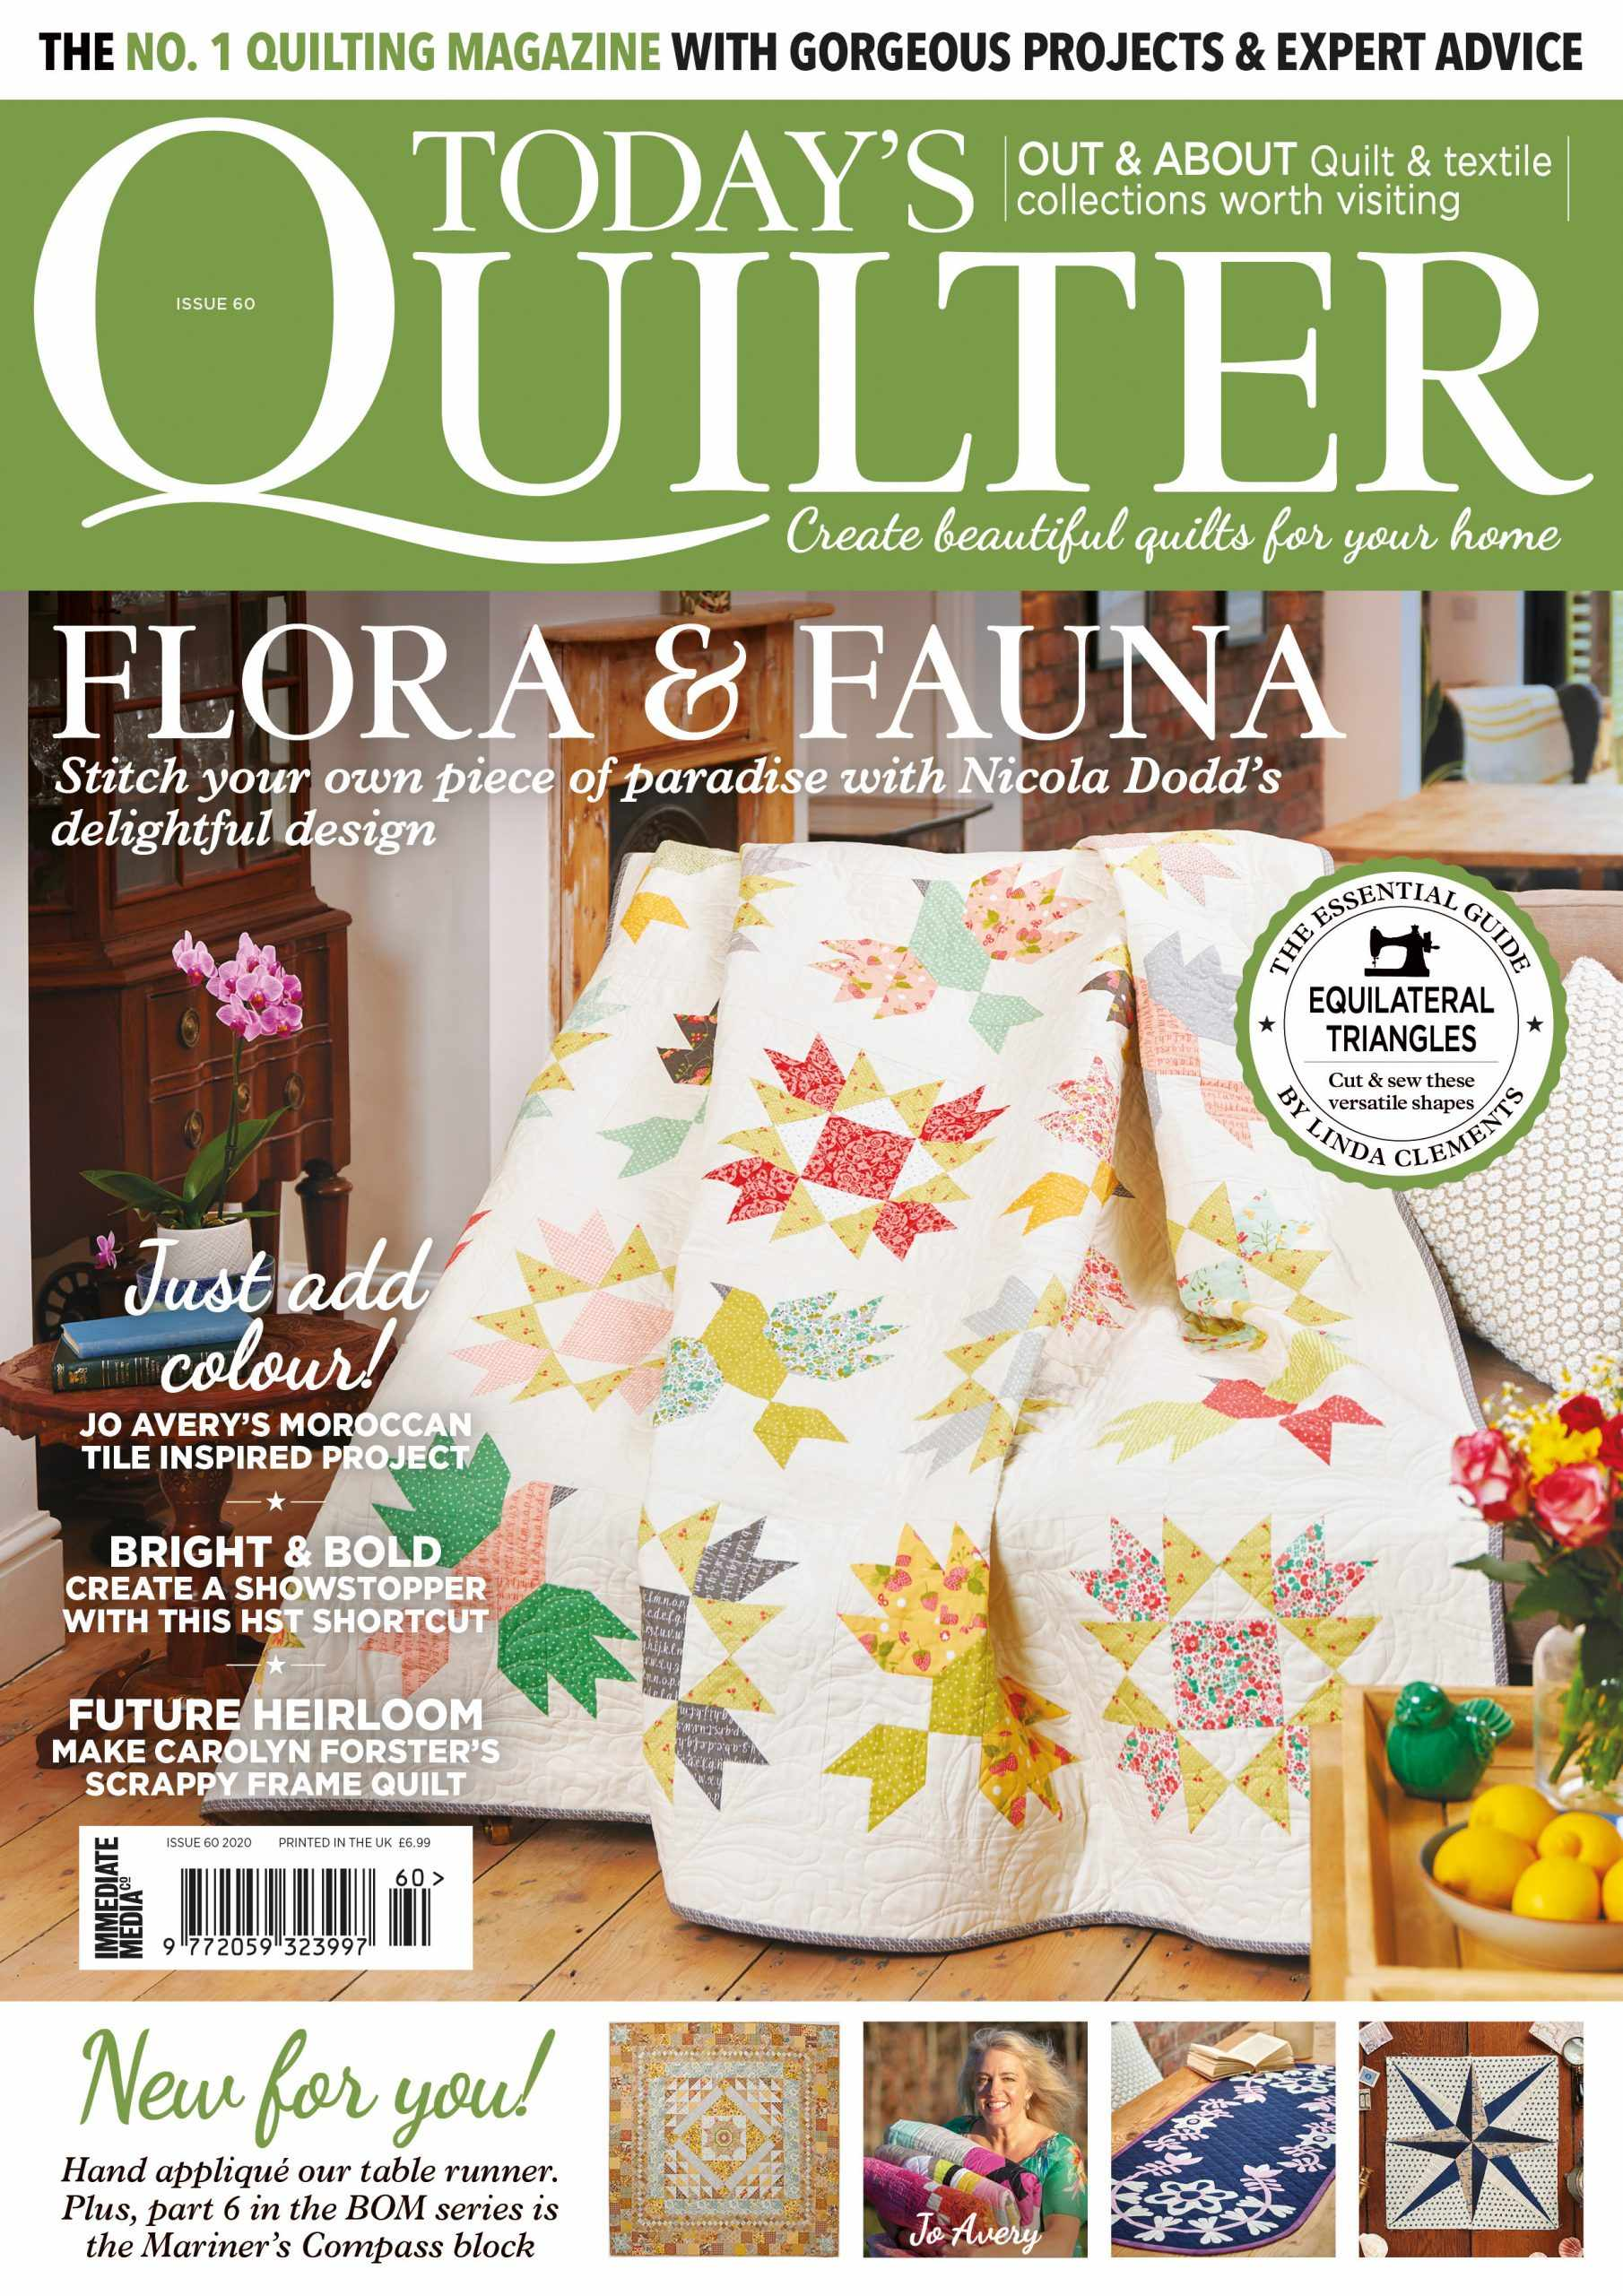 Today's Quilter magazine issue 60